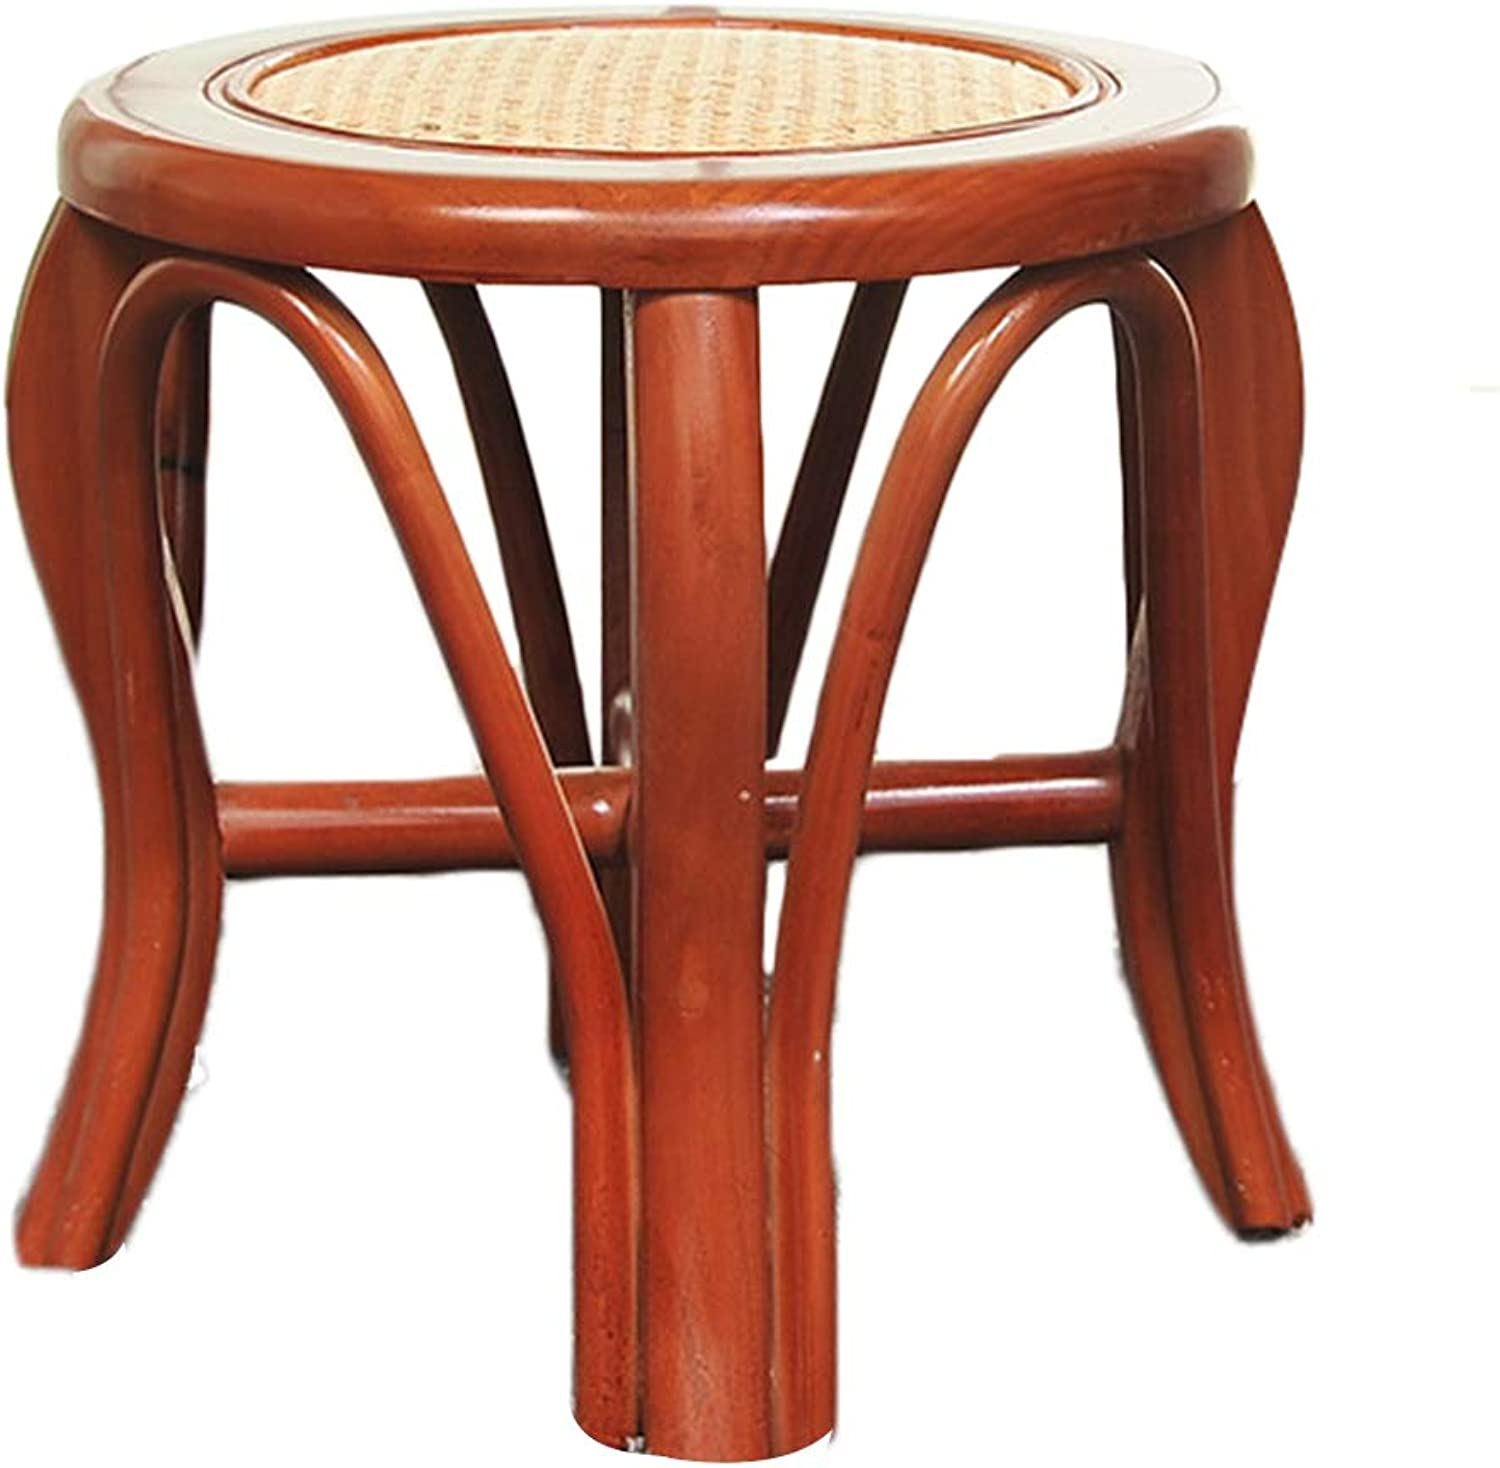 AGLZWY Small Stool Rattan Stool Environmental Predection Simple Geblackus Solid Practical, Brown, 2 Sizes (color   A, Size   34.5X35cm)